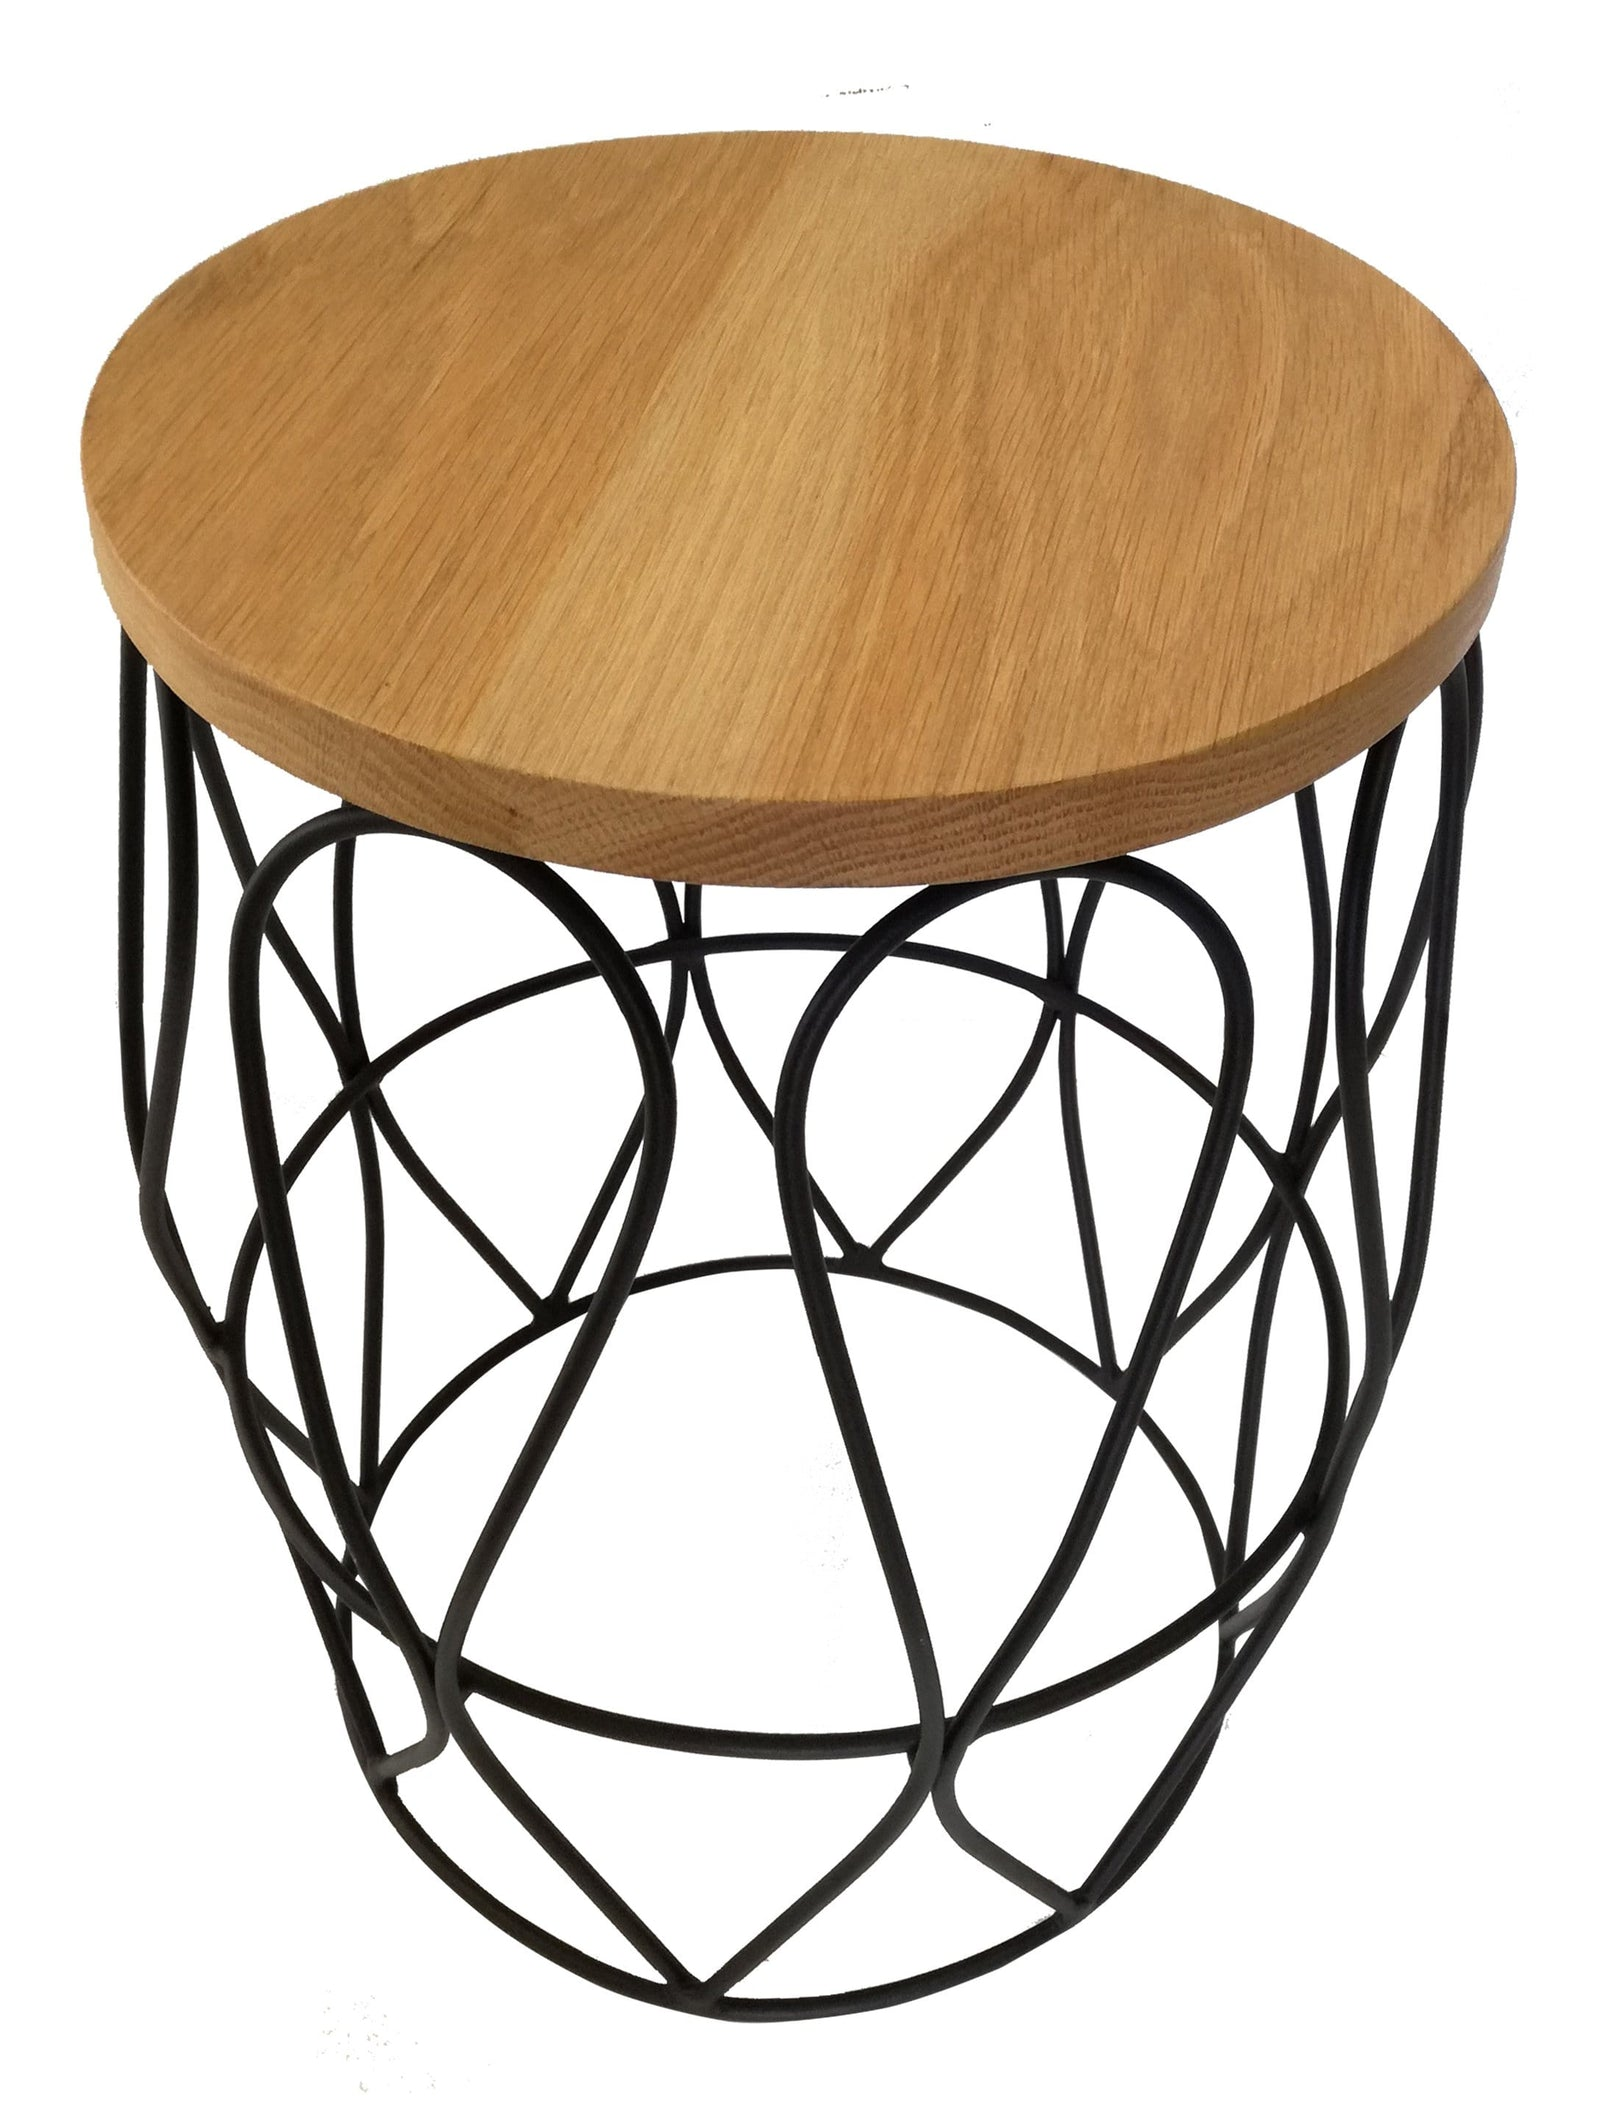 Undulate Side Table, Black Epoxy with Oak Top